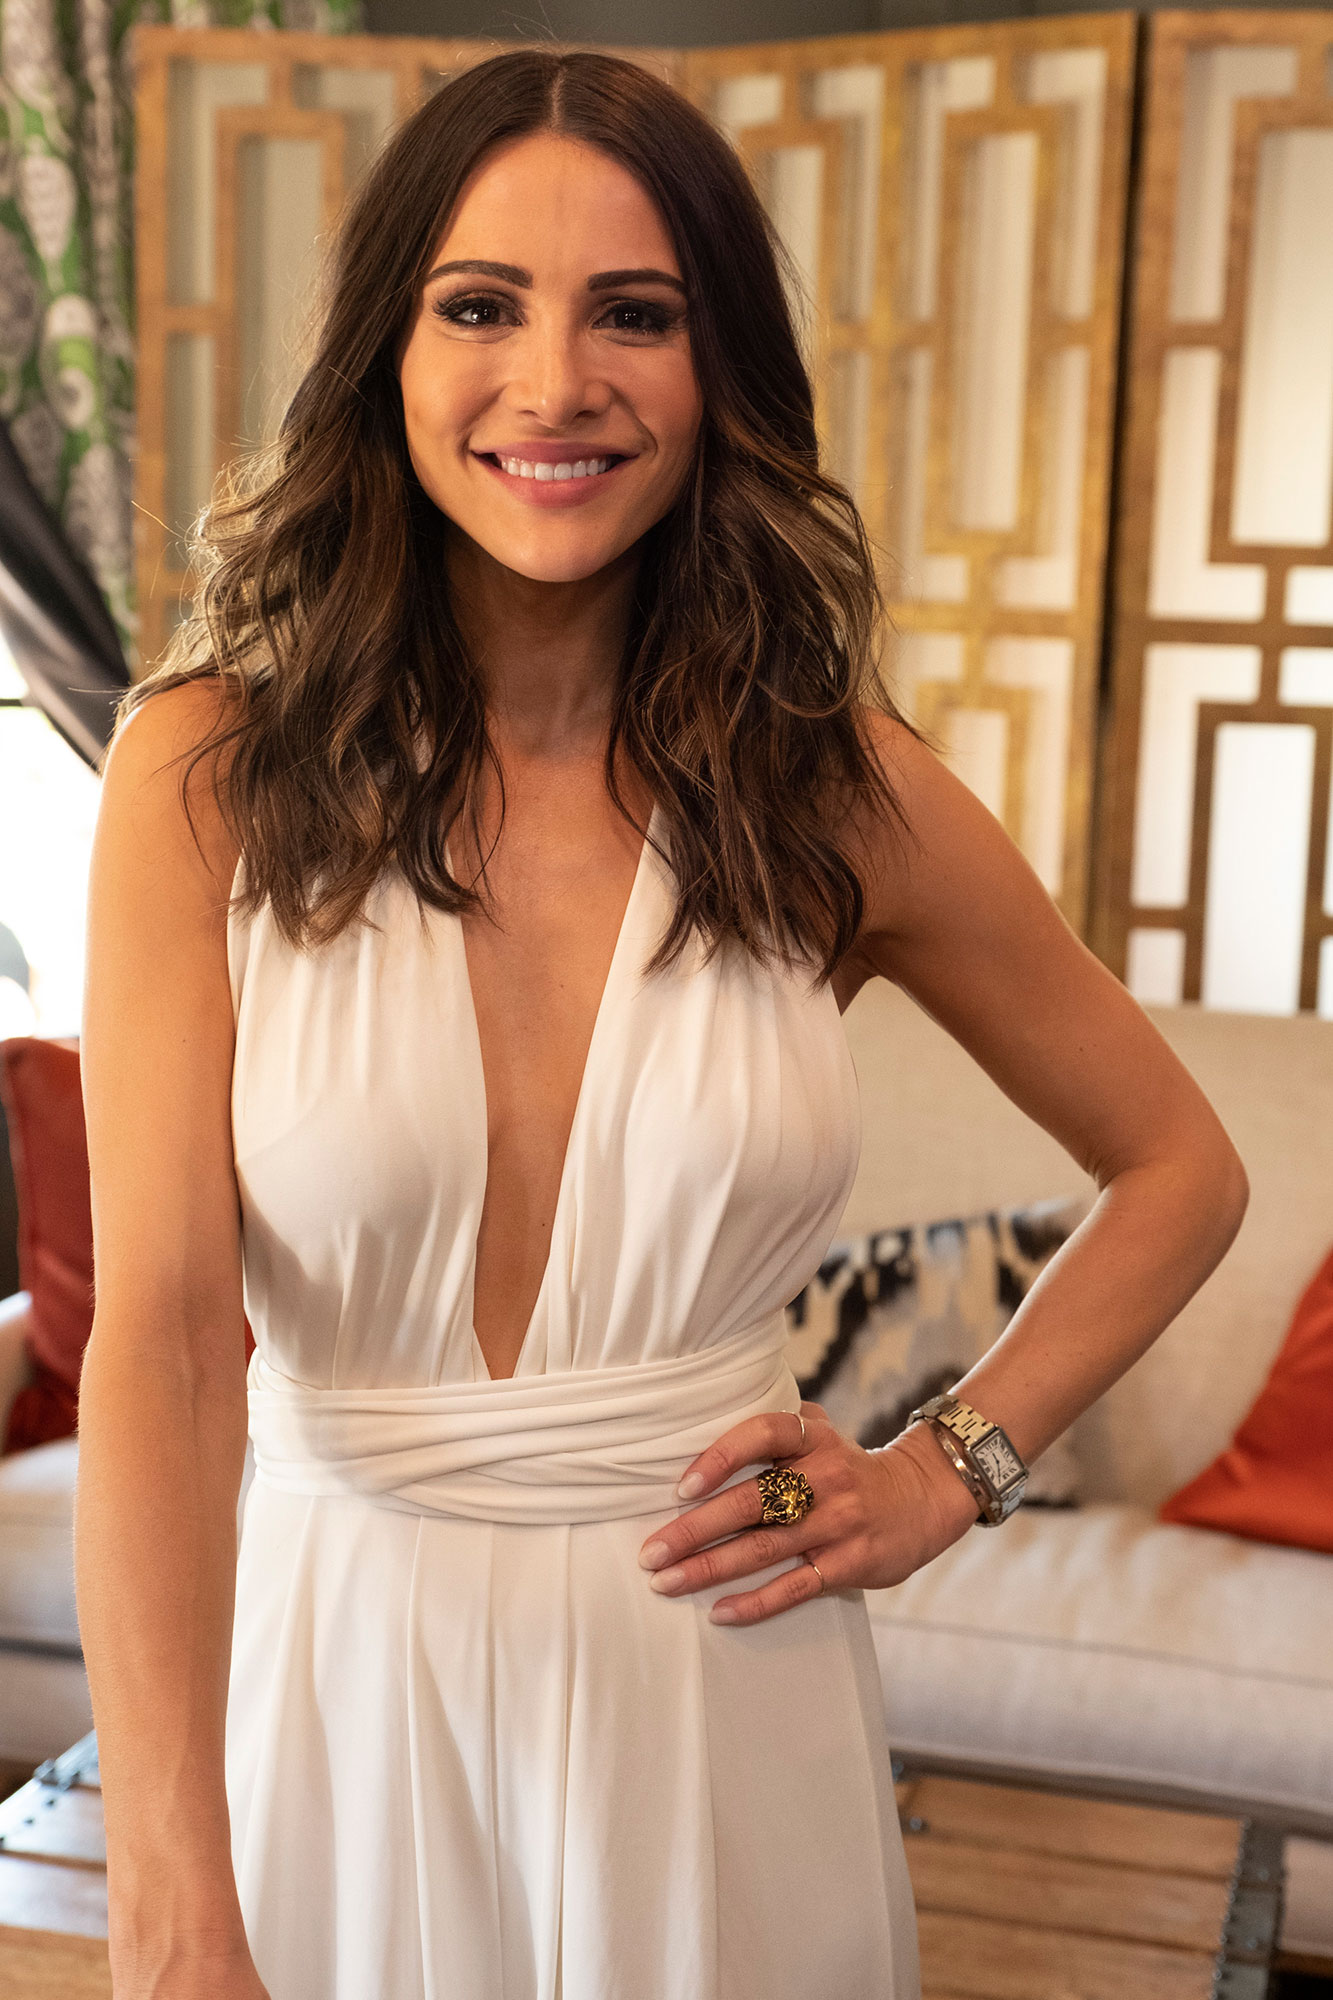 Bachelorette Reunion Special Andi Dorfman - Dorfman, 32, moved to New York after splitting from fiancé Josh Murray in January 2015. She is the author of two New York Times best sellers: It's Not Okay and Single State of Mind .